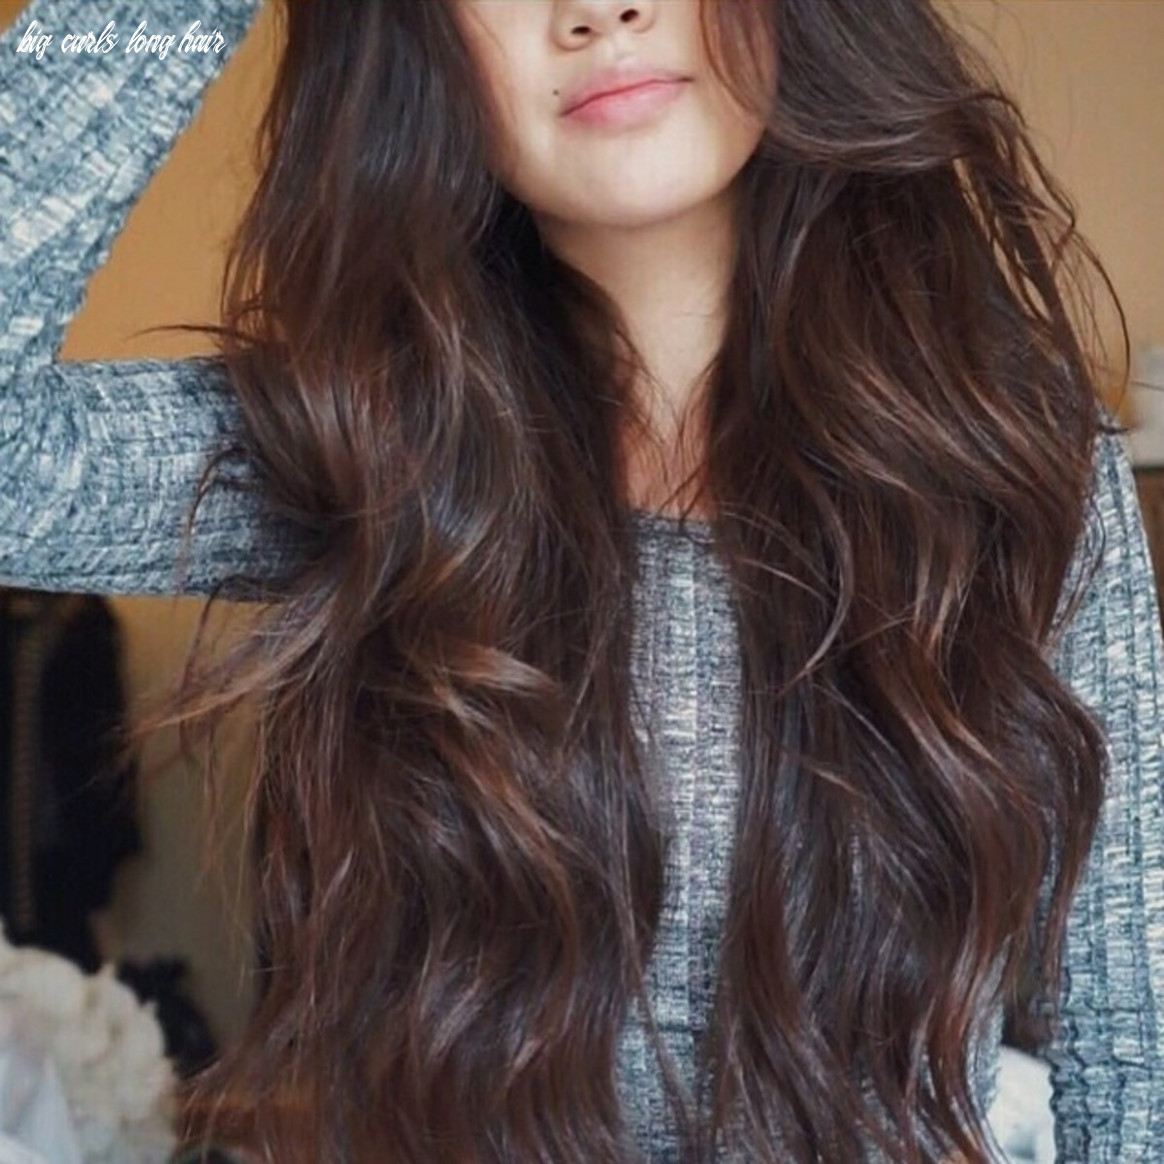 How to Get Loose Curls - Fashionista